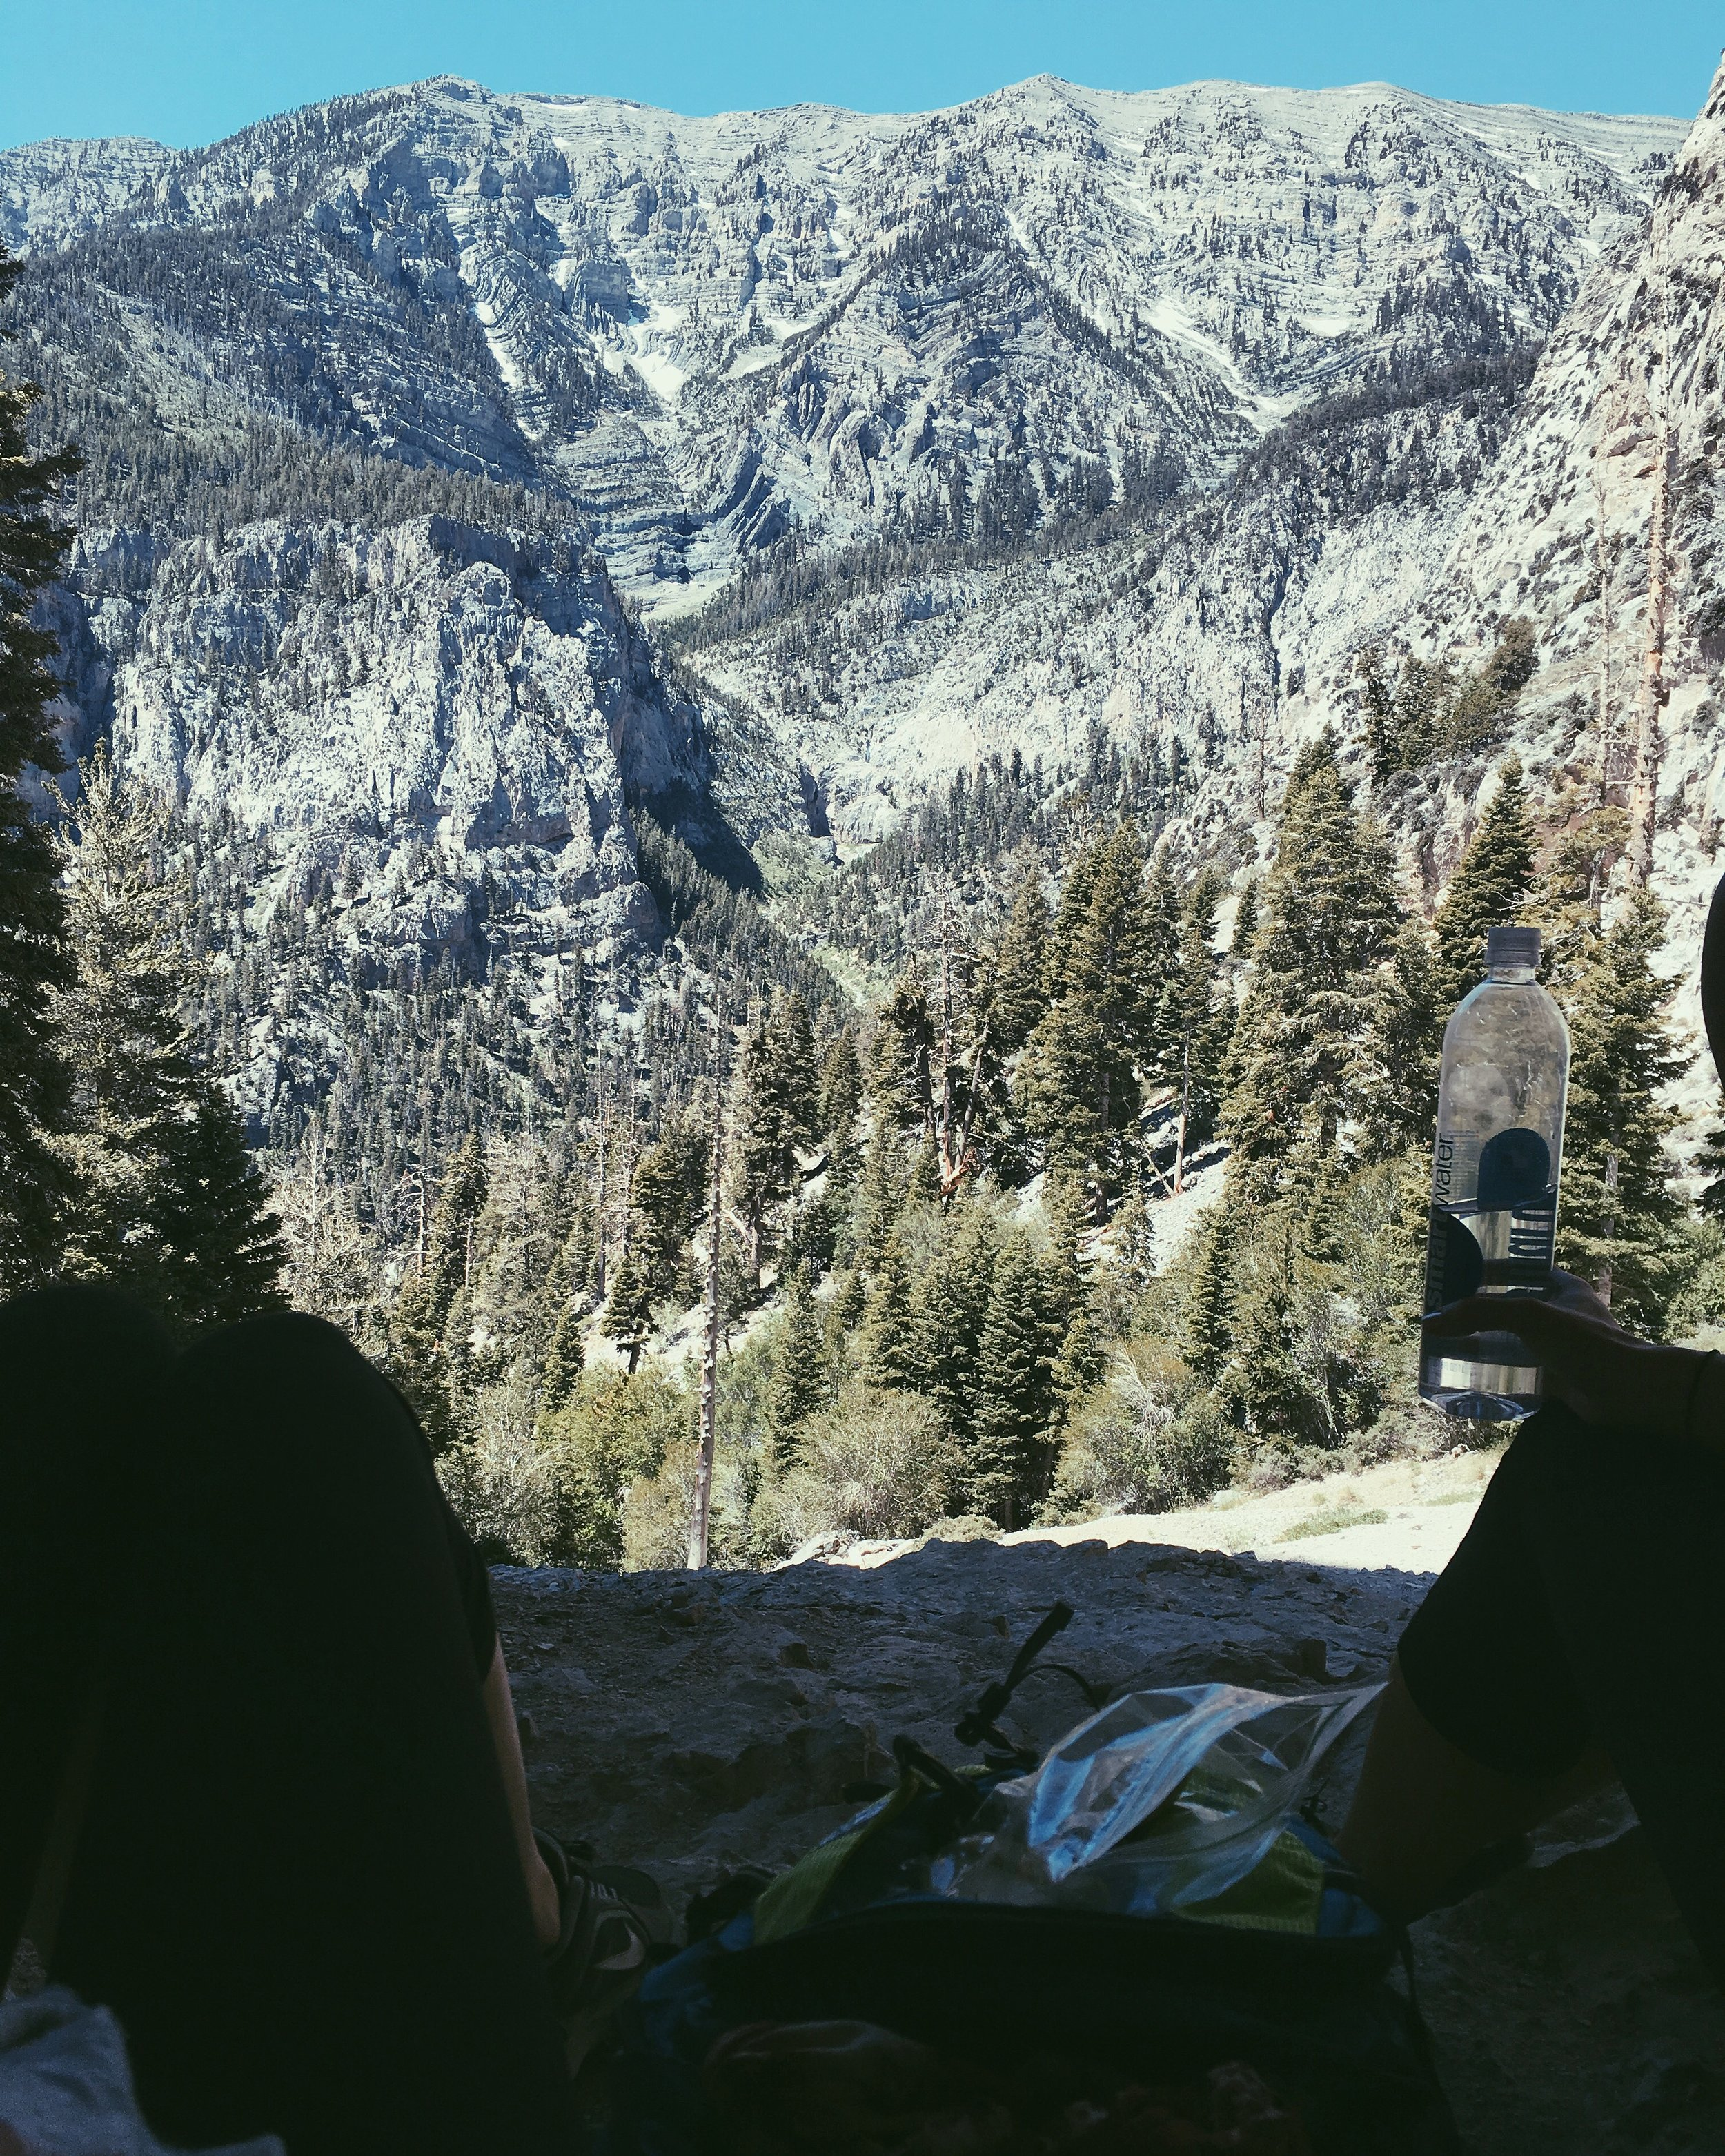 4. Mountain escapes with my college bestie. Mt. Charleston, NV.